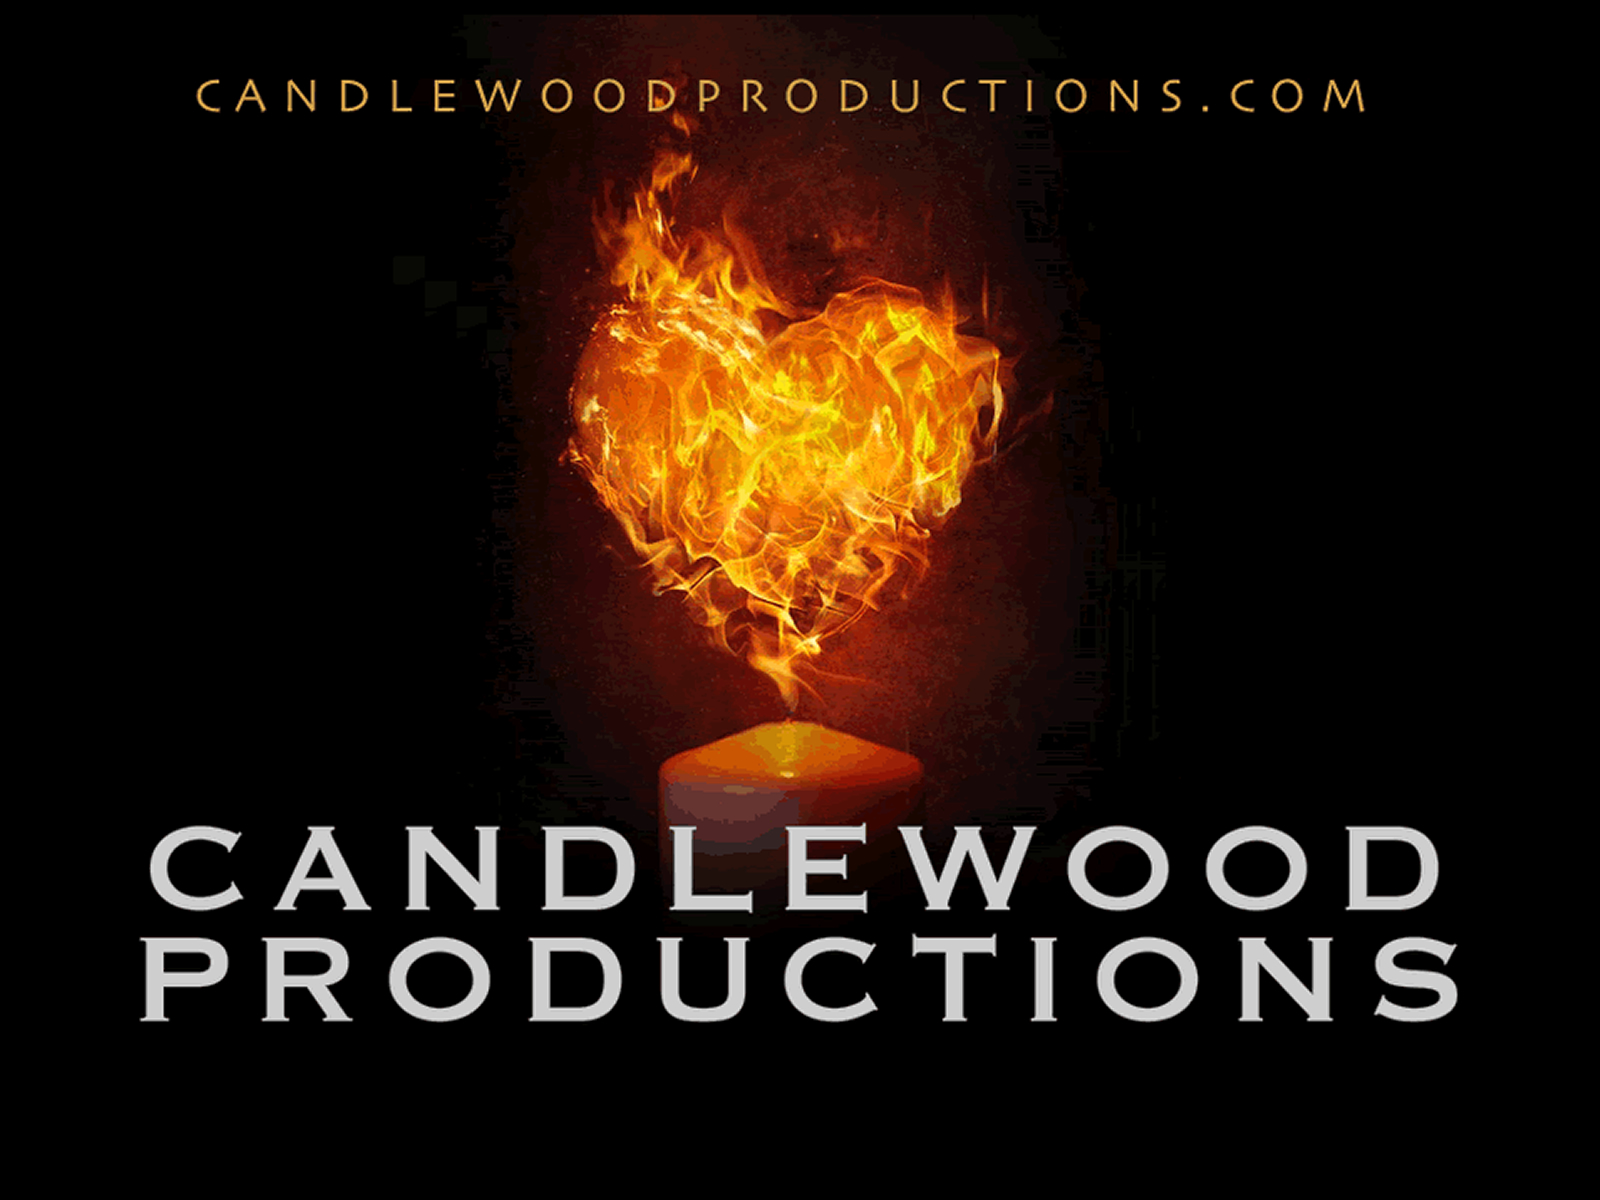 Candlewood Productions